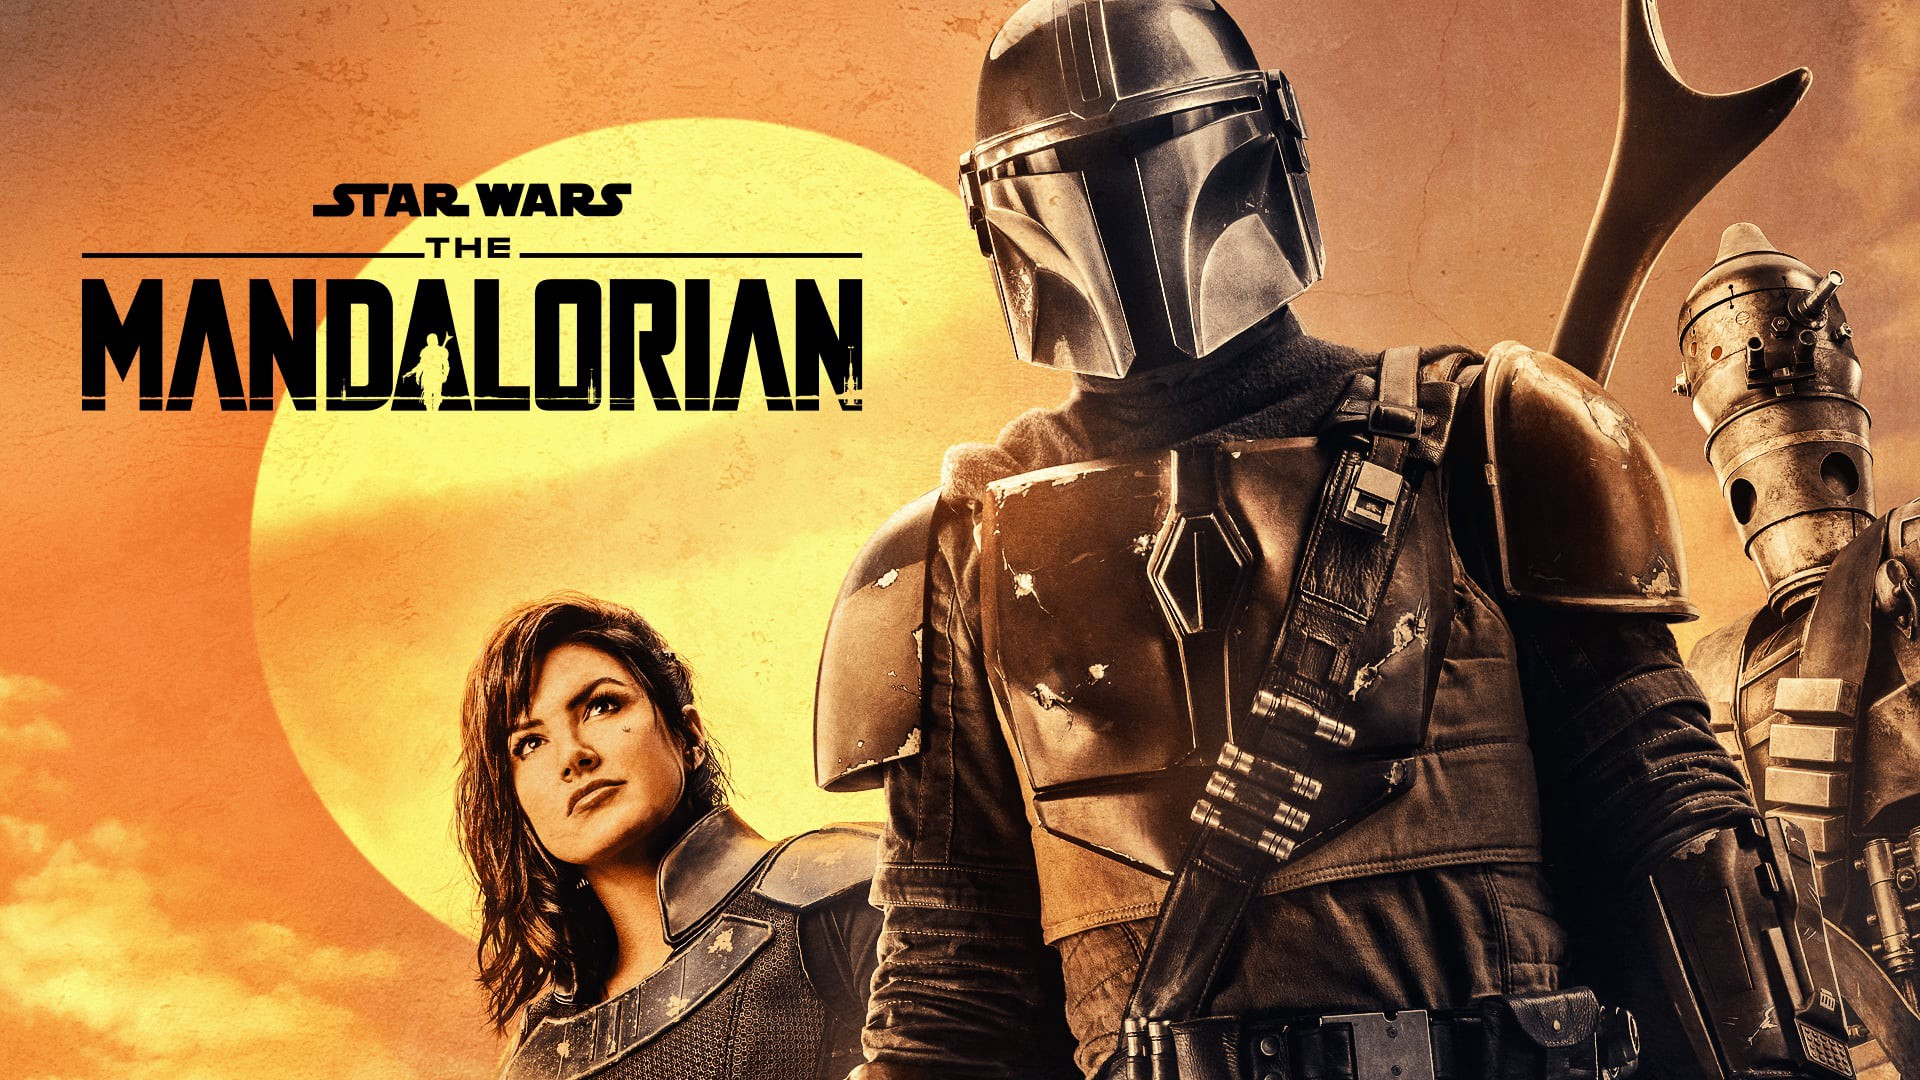 The Mandalorian Aired Episodes : watch online the mandalorian season 1 episode 3 full ~ Pogadajmy.info Styles, Décorations et Voitures